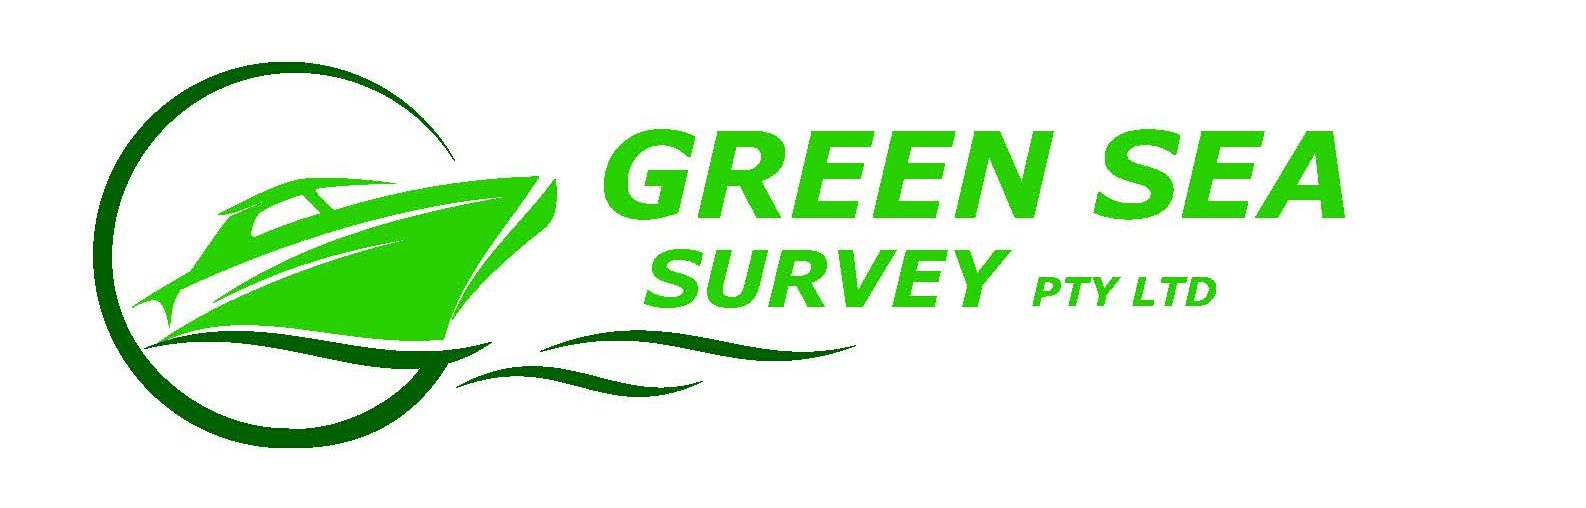 Green Sea Survey Pty Ltd